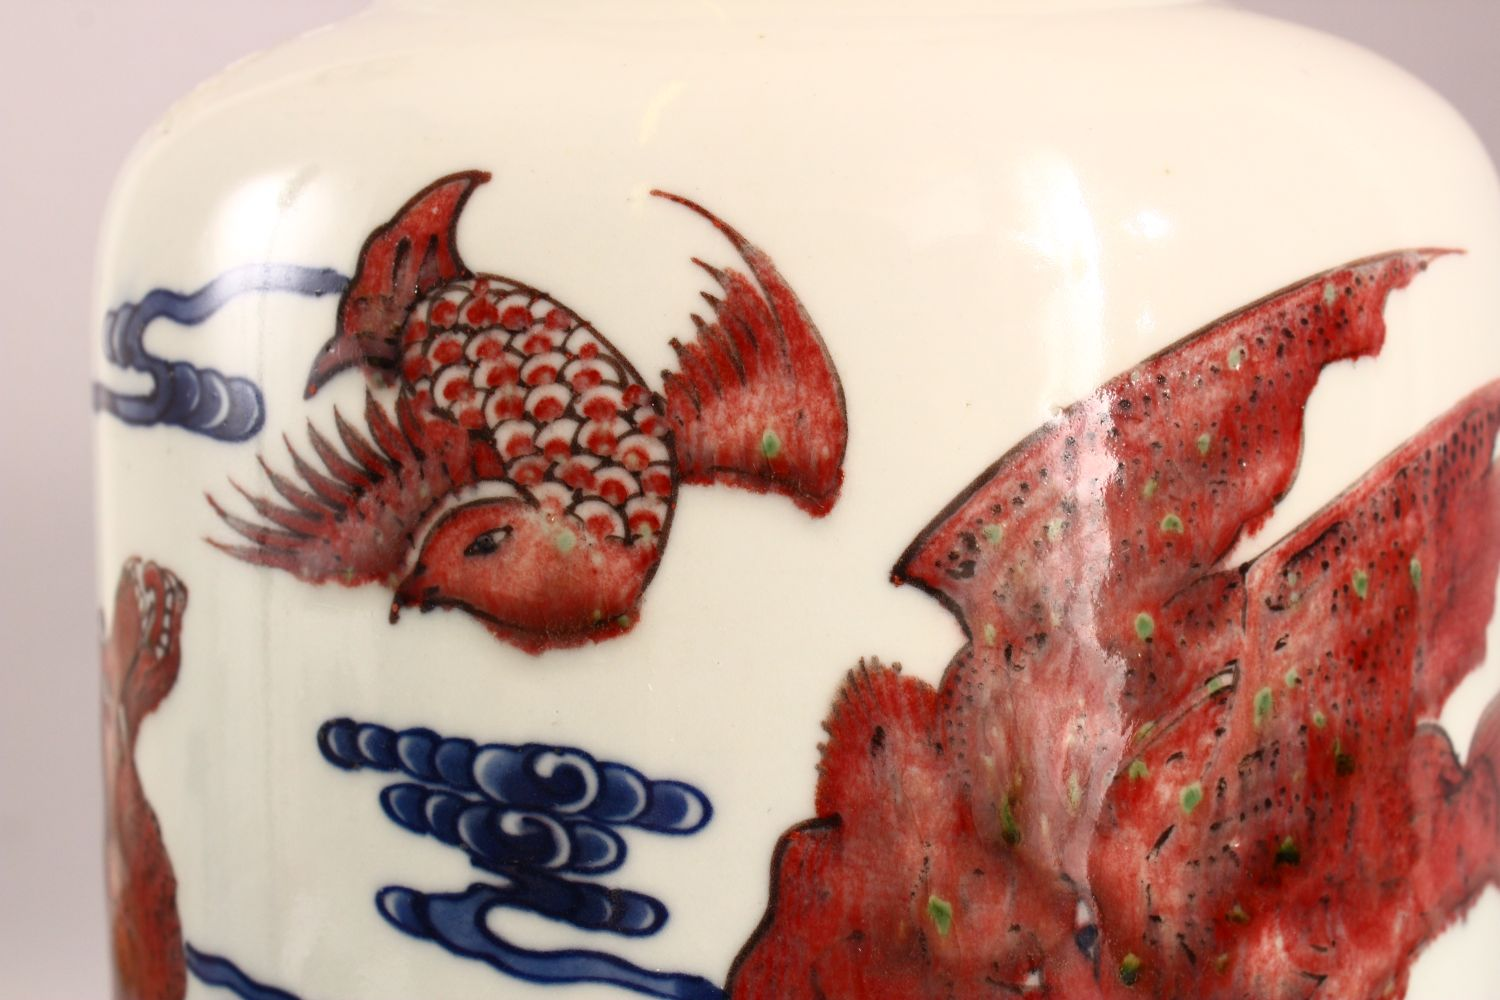 A CHINESE IRON RED, BLUE AND WHITE VASE, the body painted with mythical creatures amongst stylised - Image 6 of 7